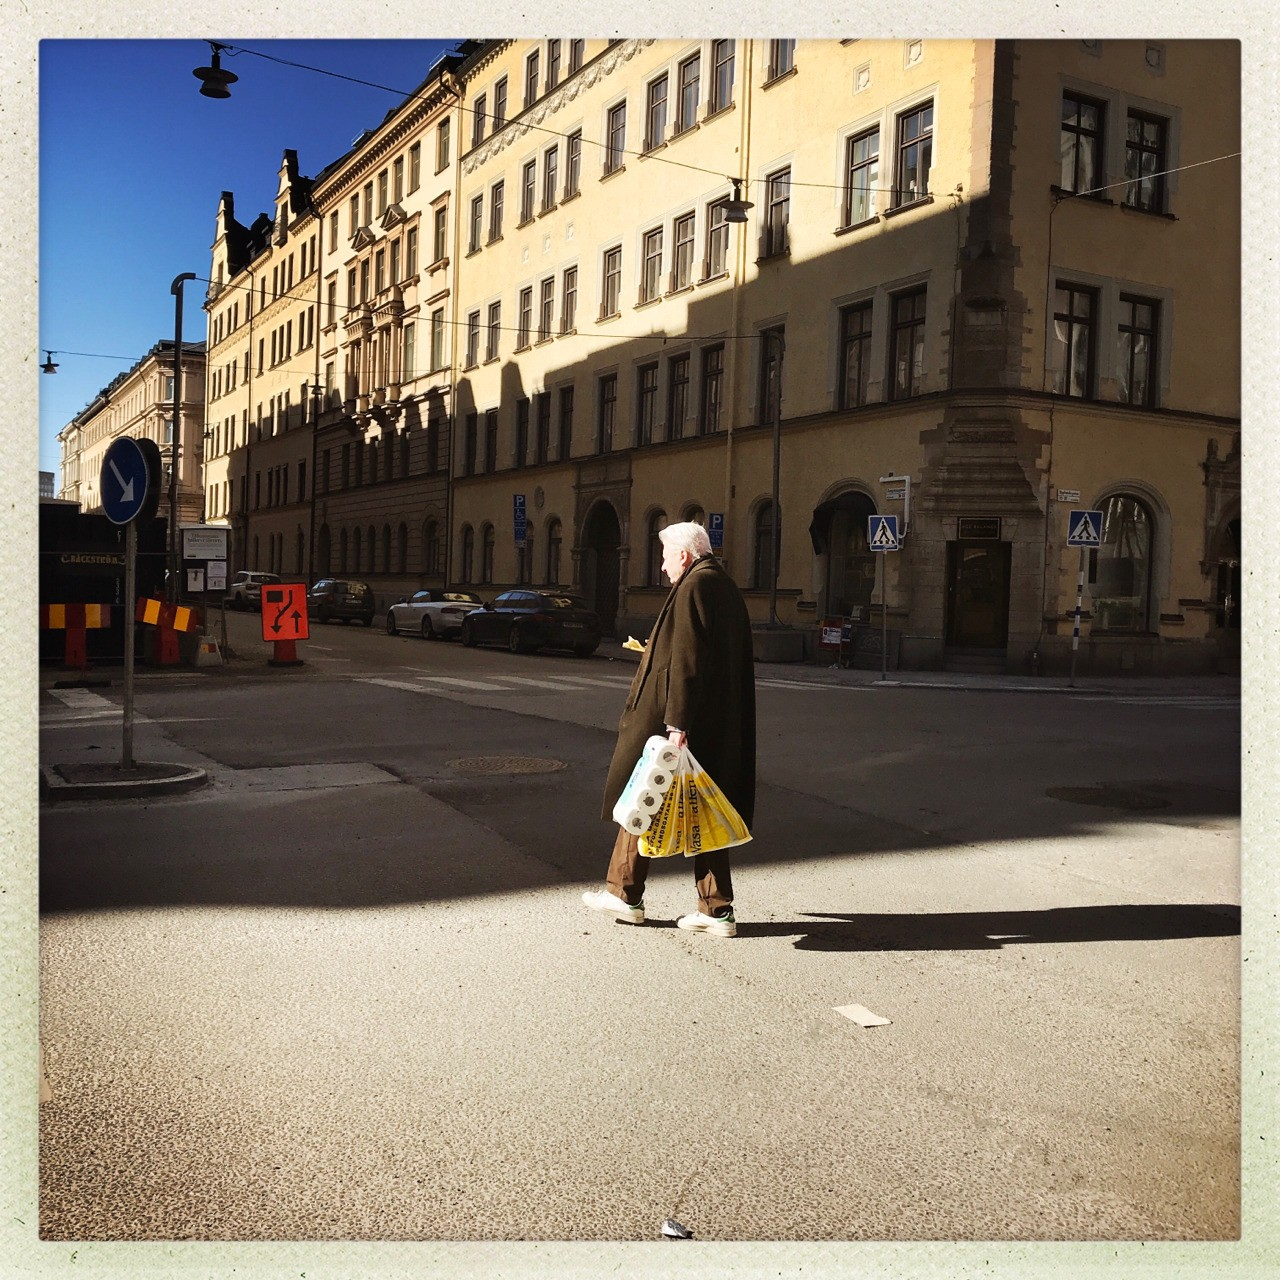 From the light into the shadows #street #stockholm #hipstamatic